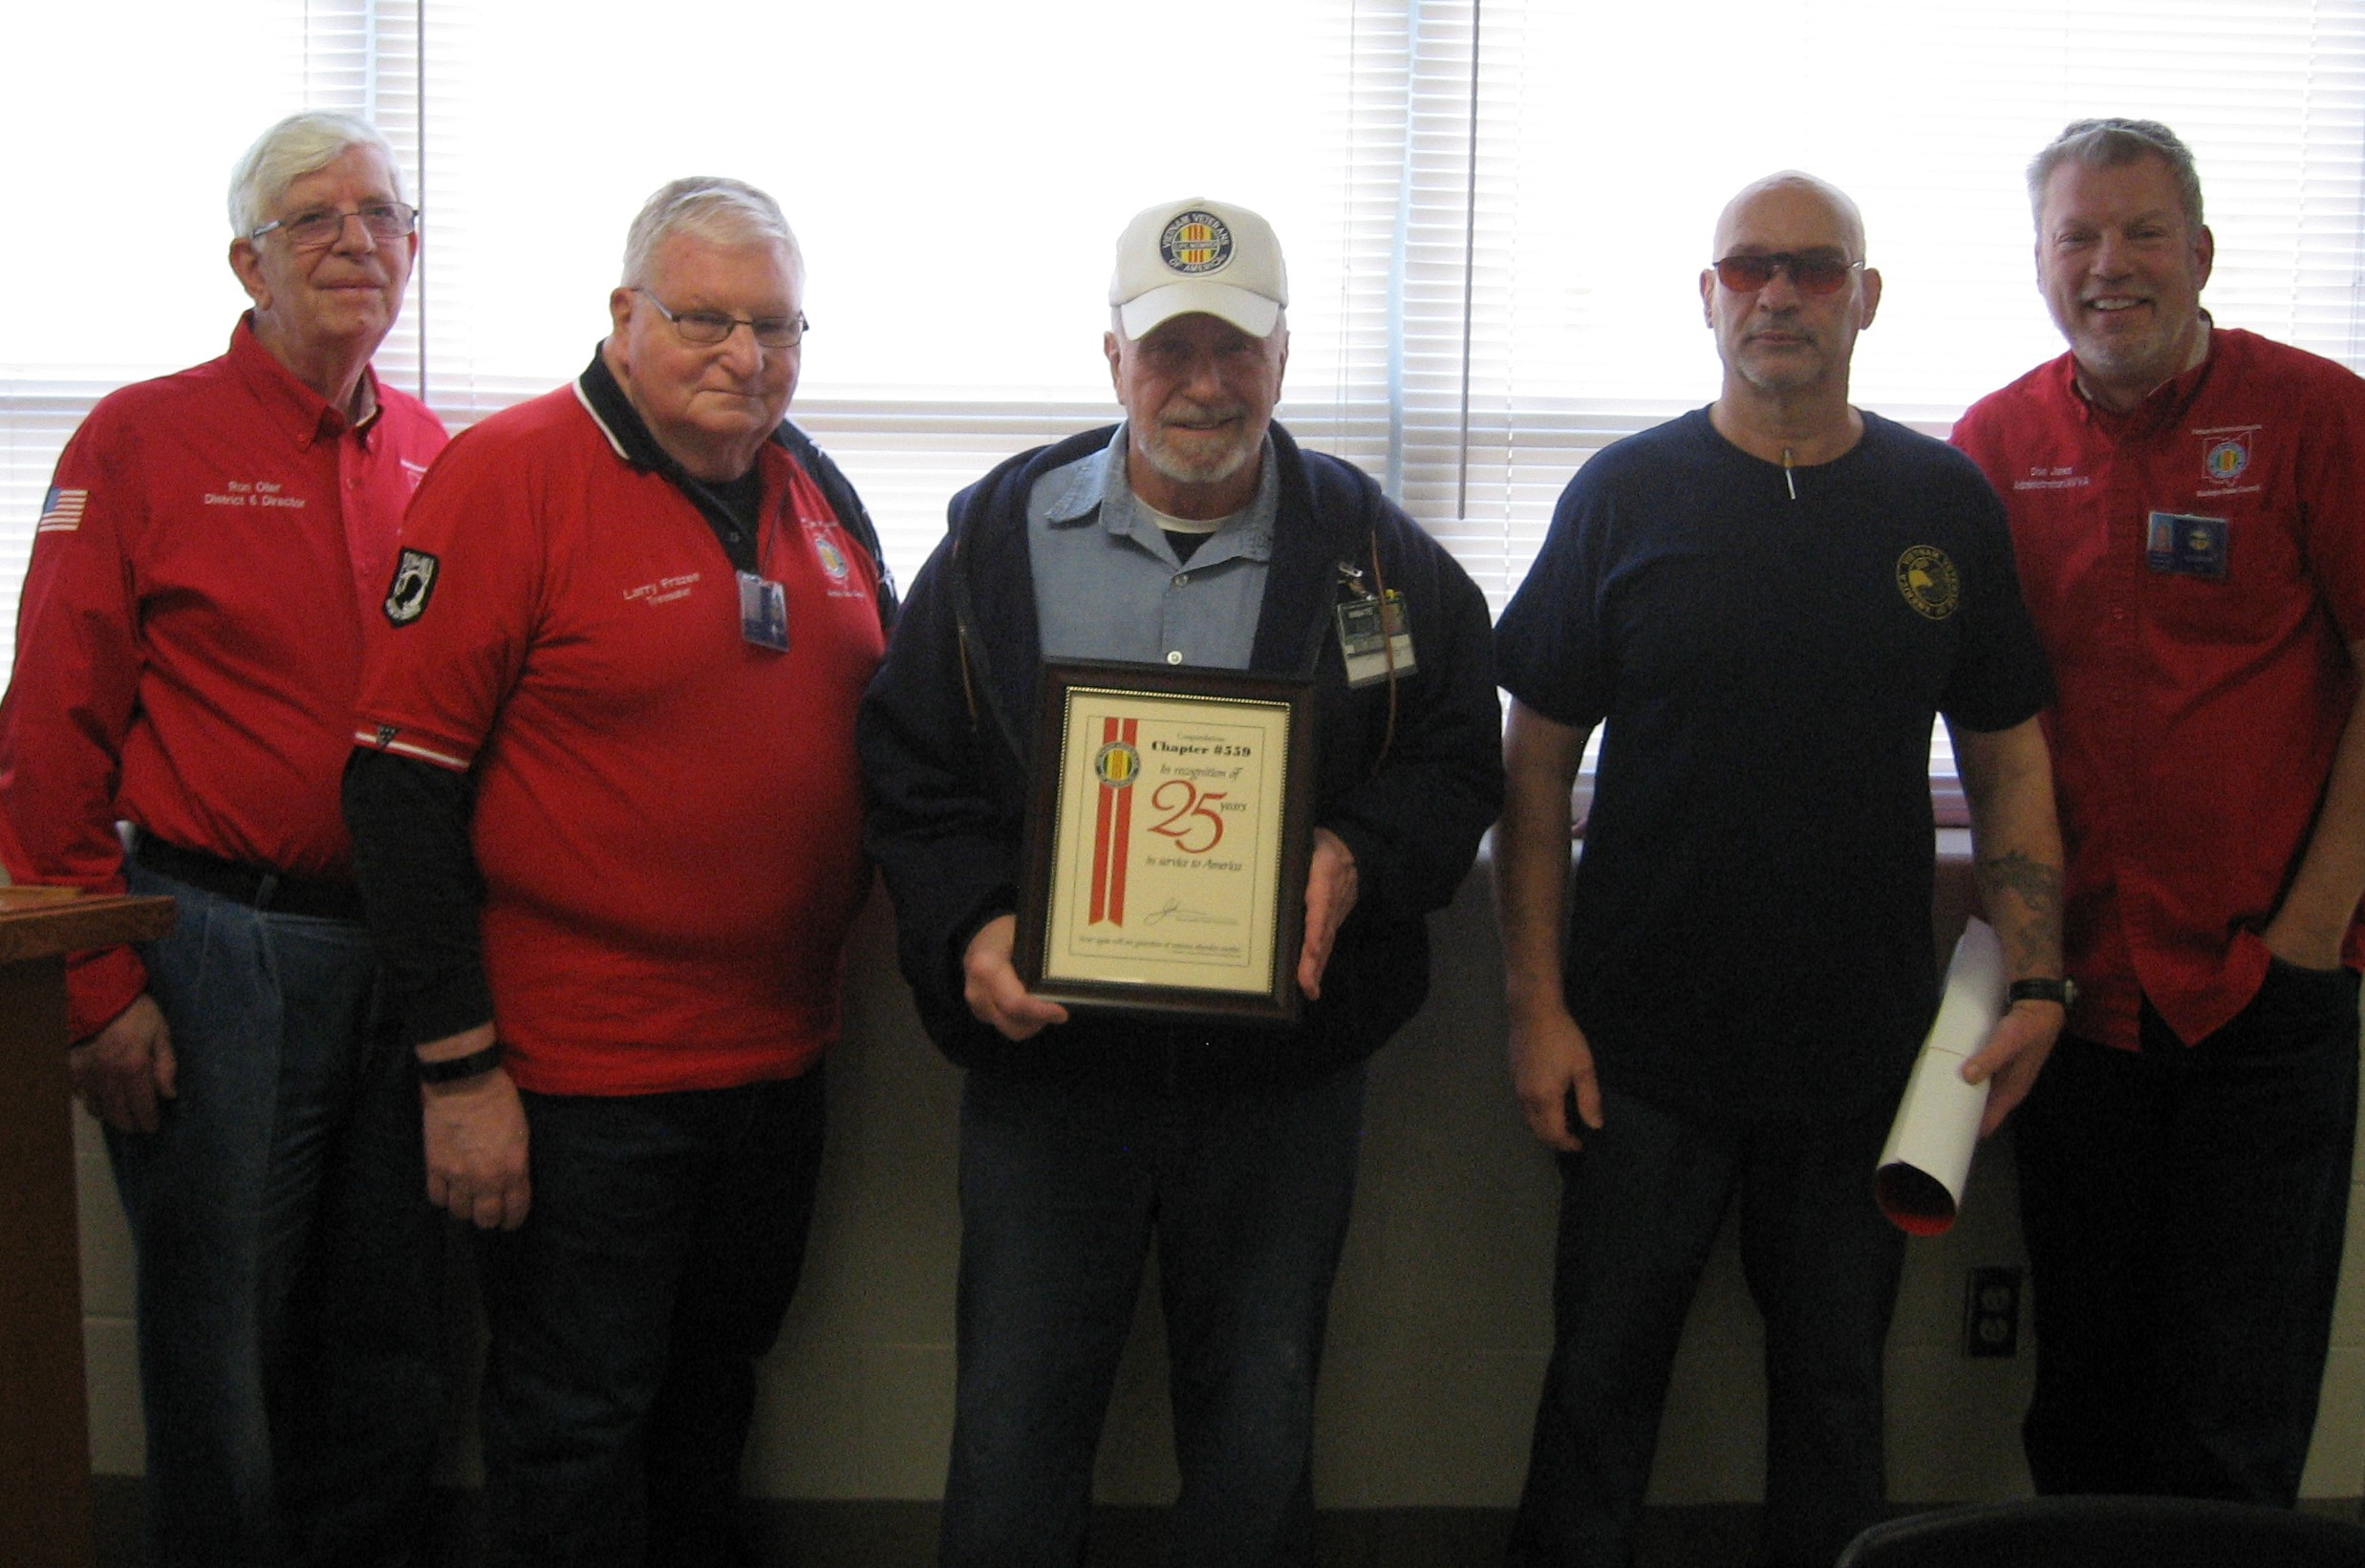 GCI's VVA Chapter 559 Receives 25 Years Award